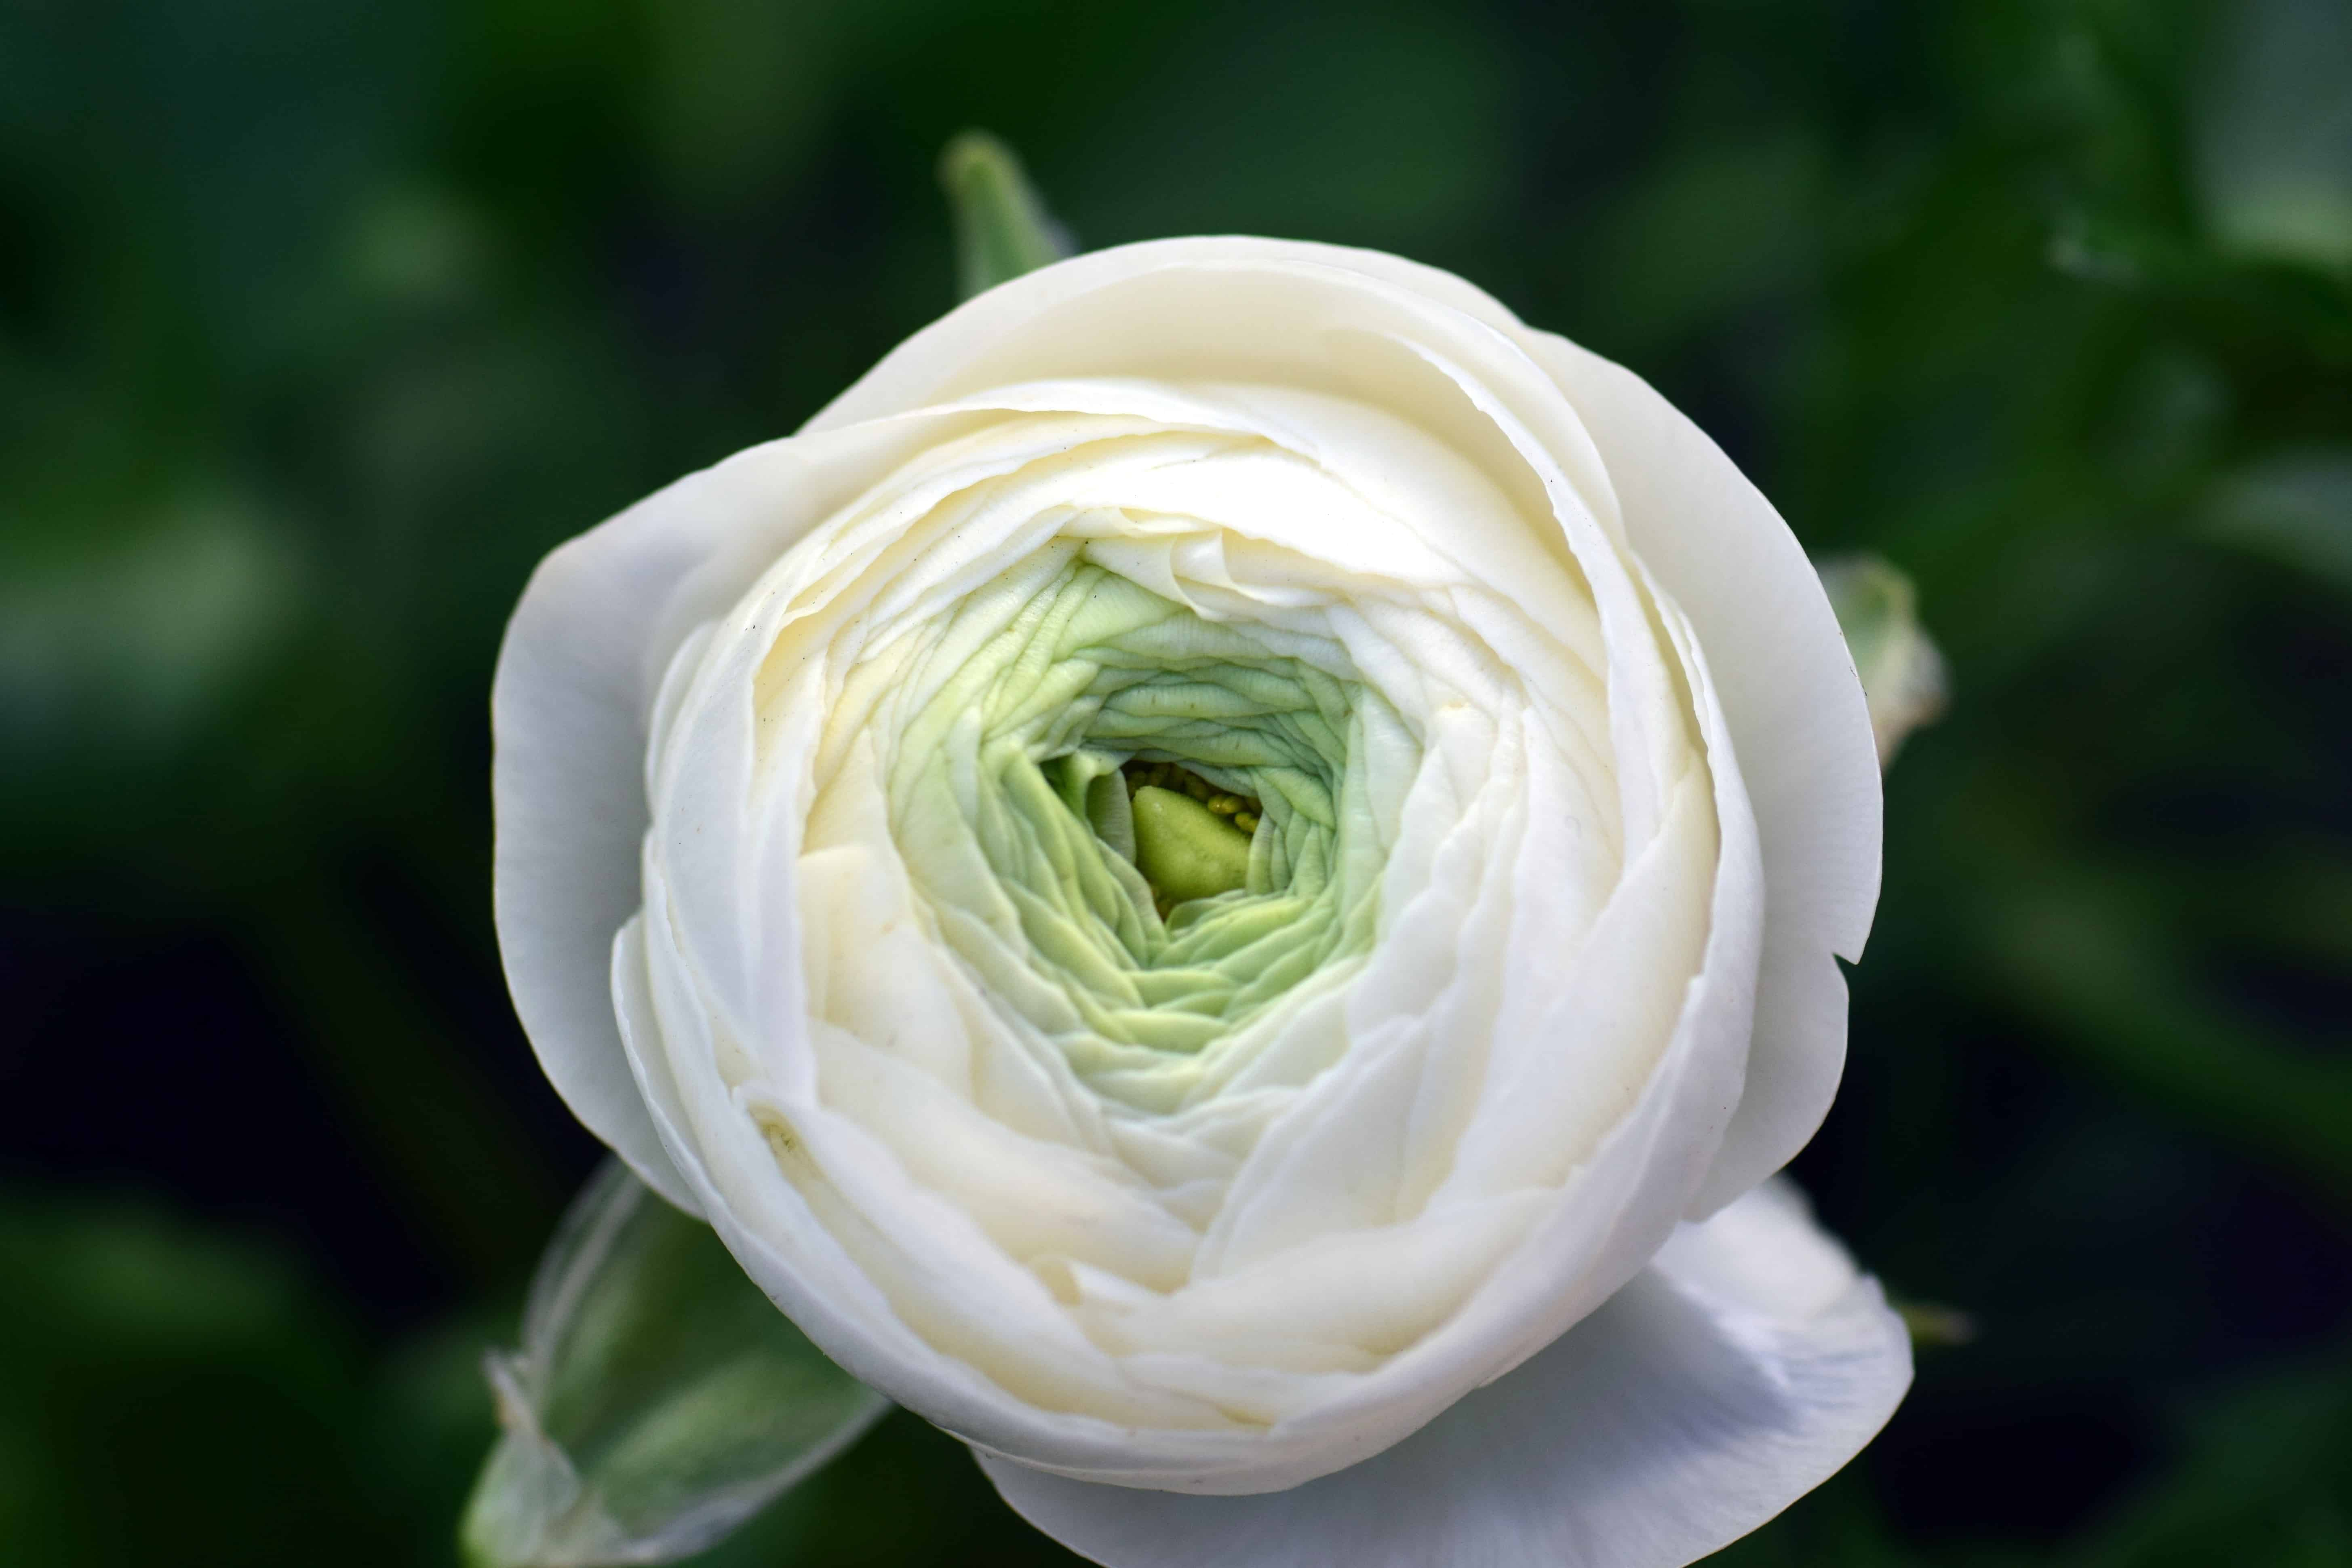 Free picture nature leaf white flower flower bud flora rose nature leaf white flower flower bud flora rose white blossom petal mightylinksfo